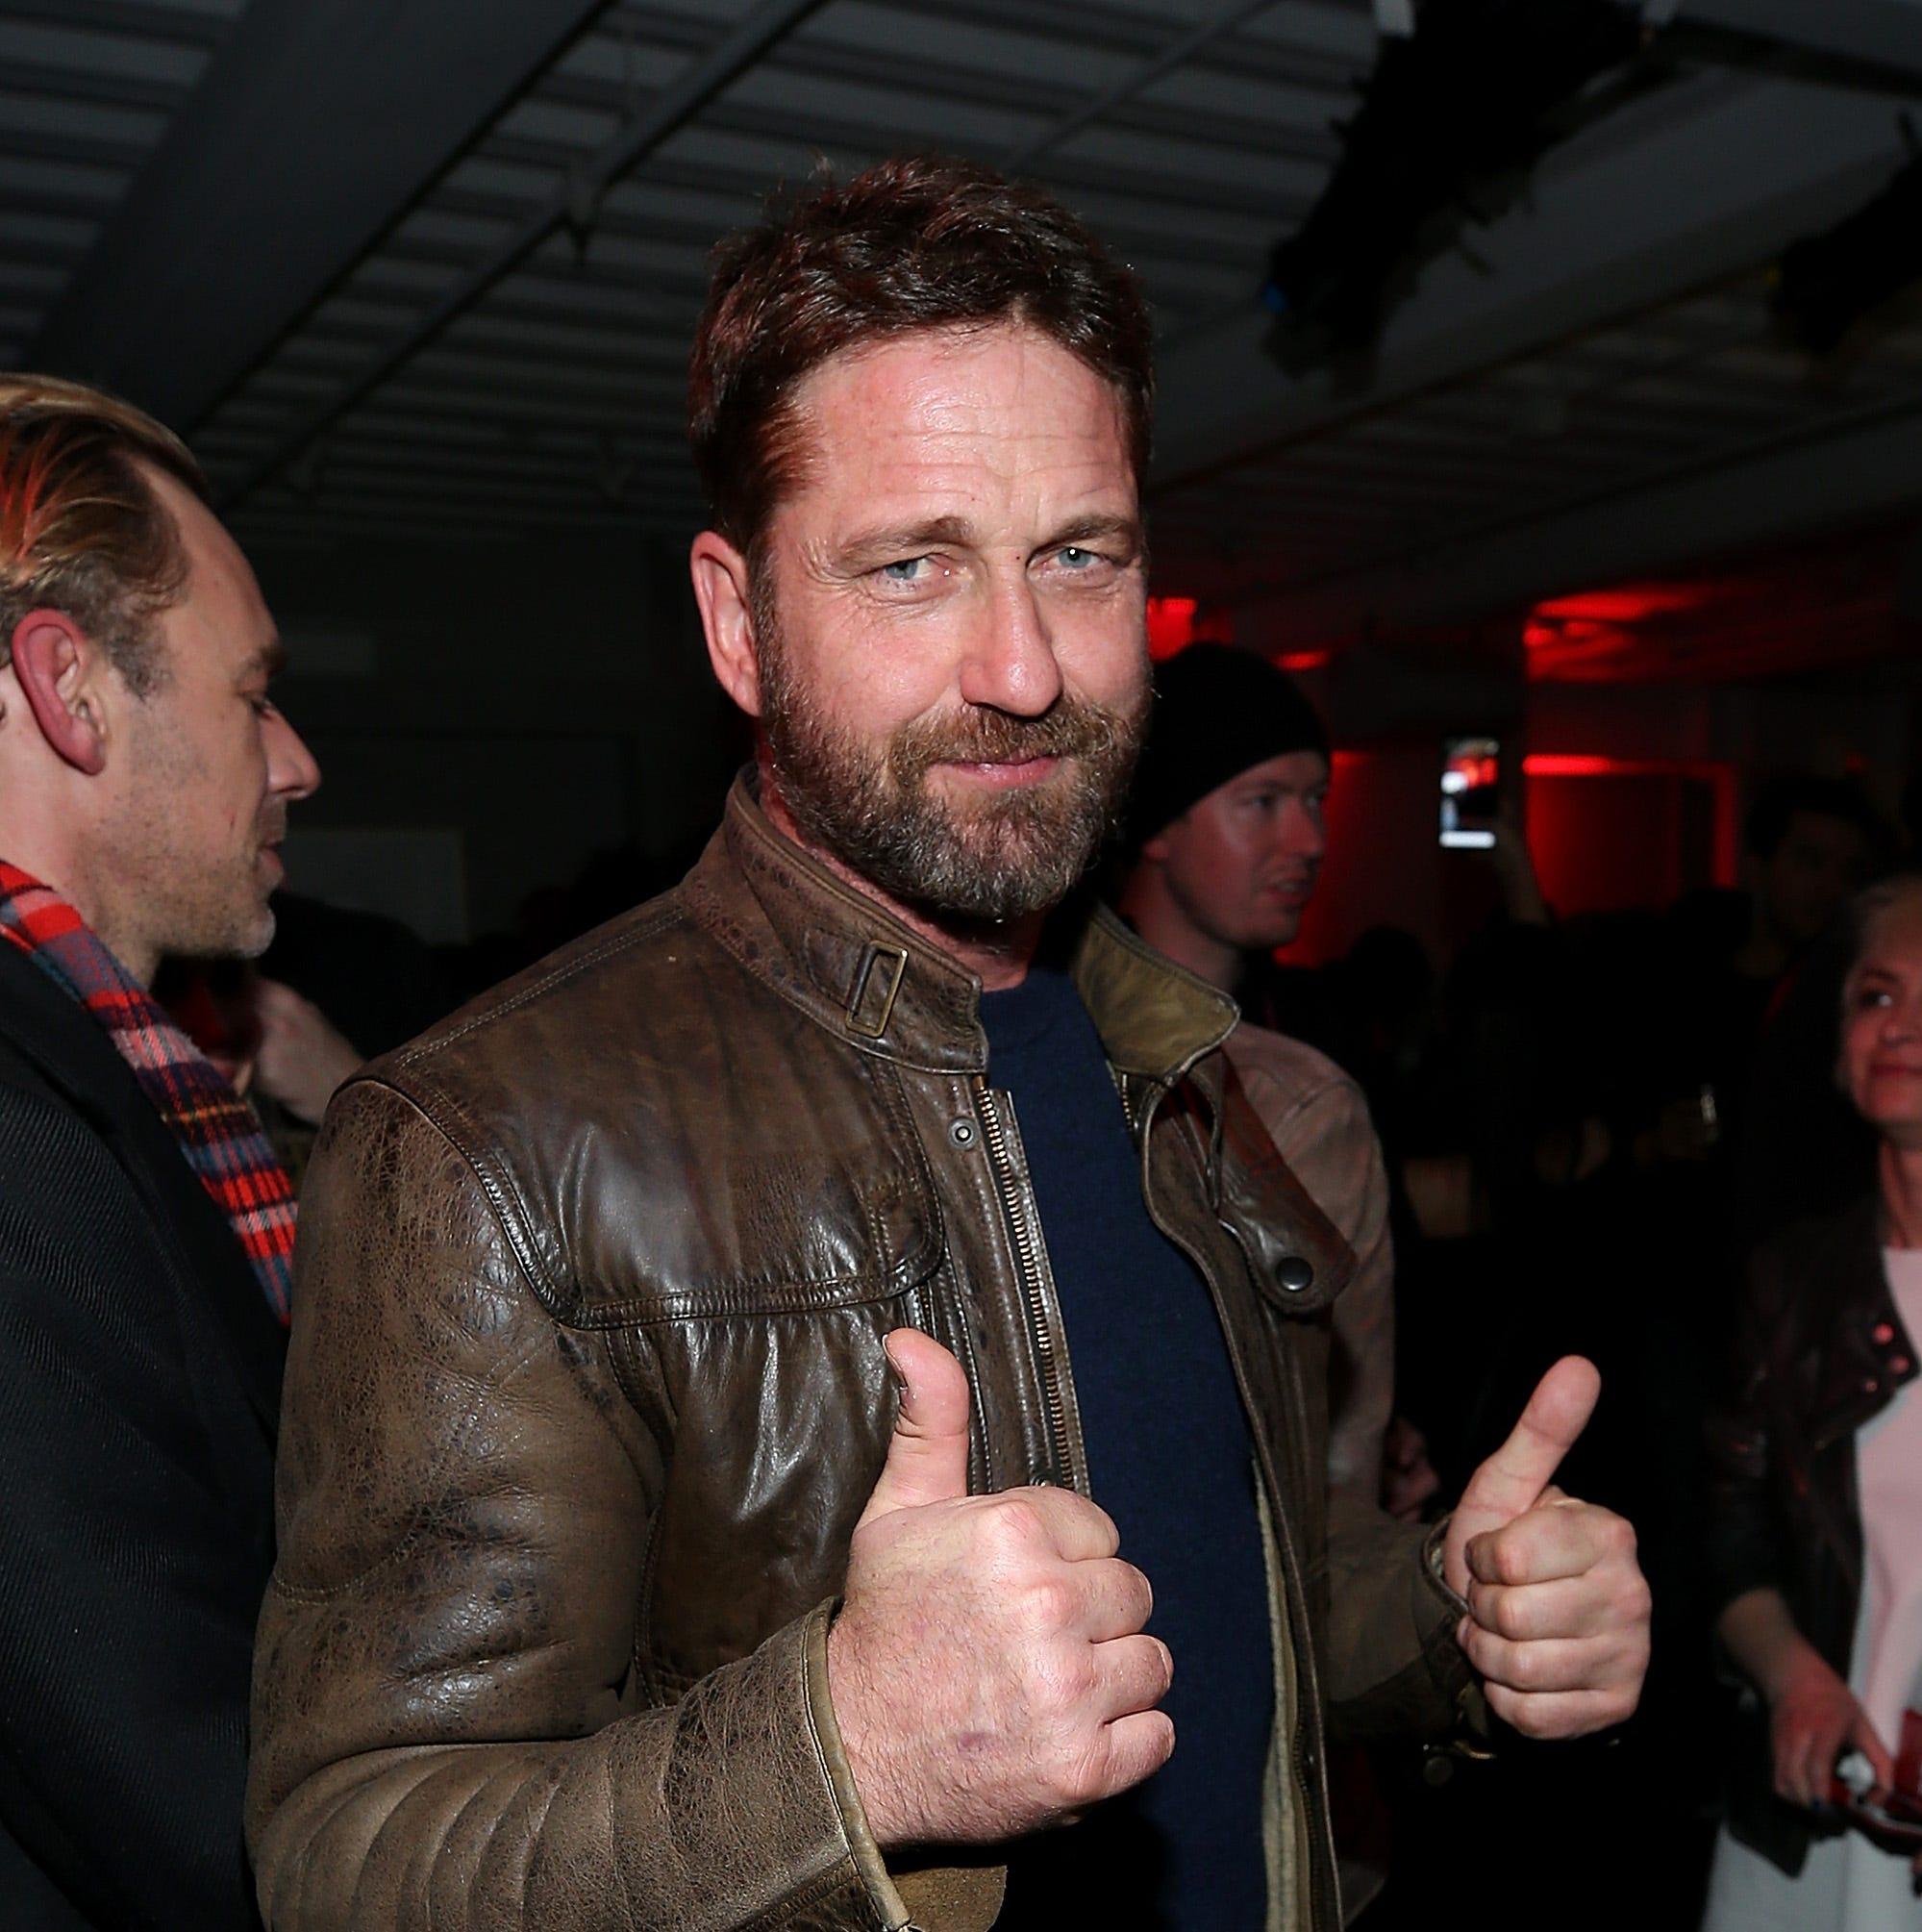 Gerard Butler made an appearance at NASA Wallops rocket launch